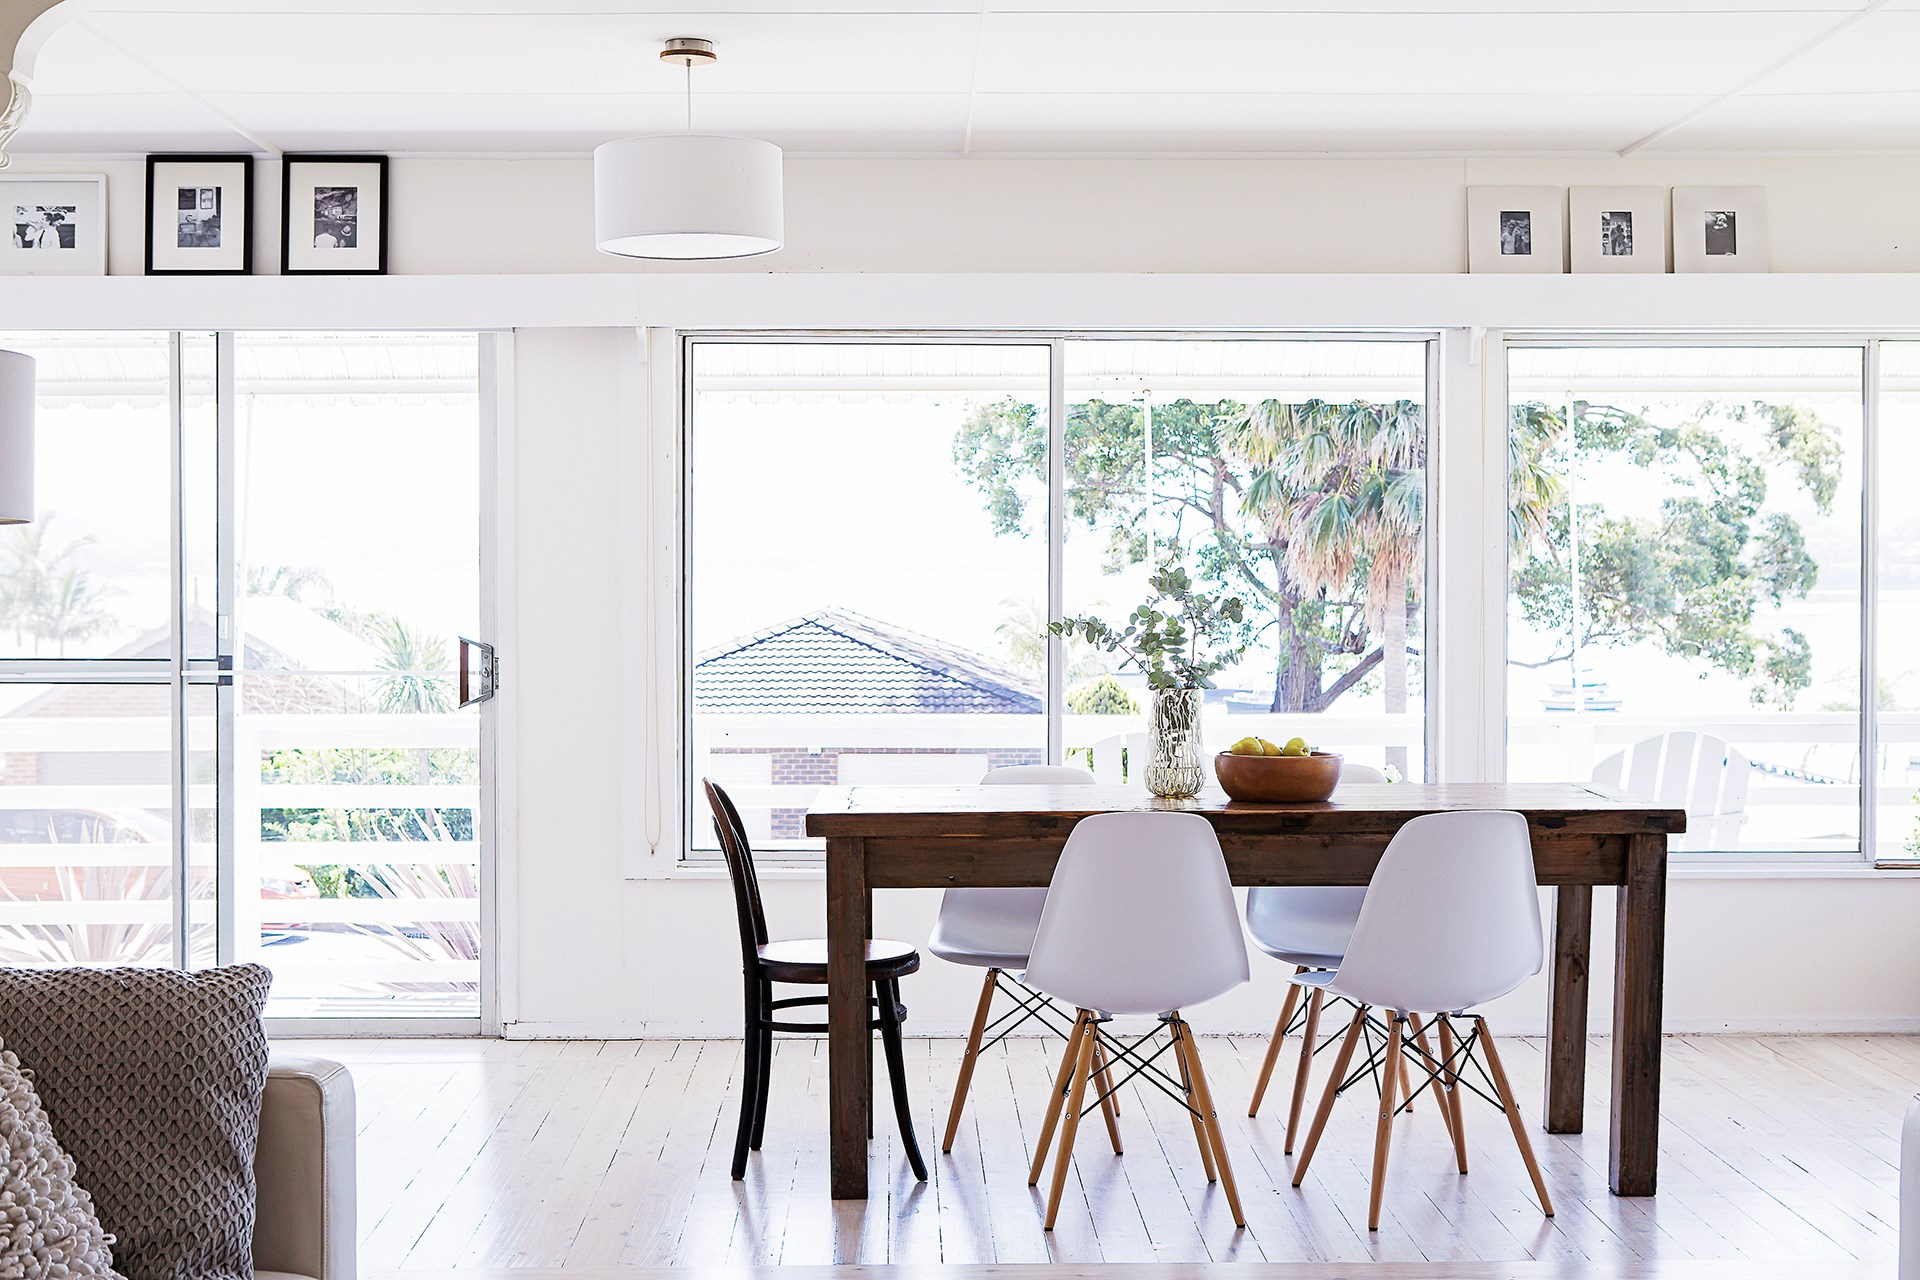 Stella and Michael wanted their new home to be a sanctuary away from their working lives, so the fact it was a bright and airy corner block with high ceilings sealed the deal.